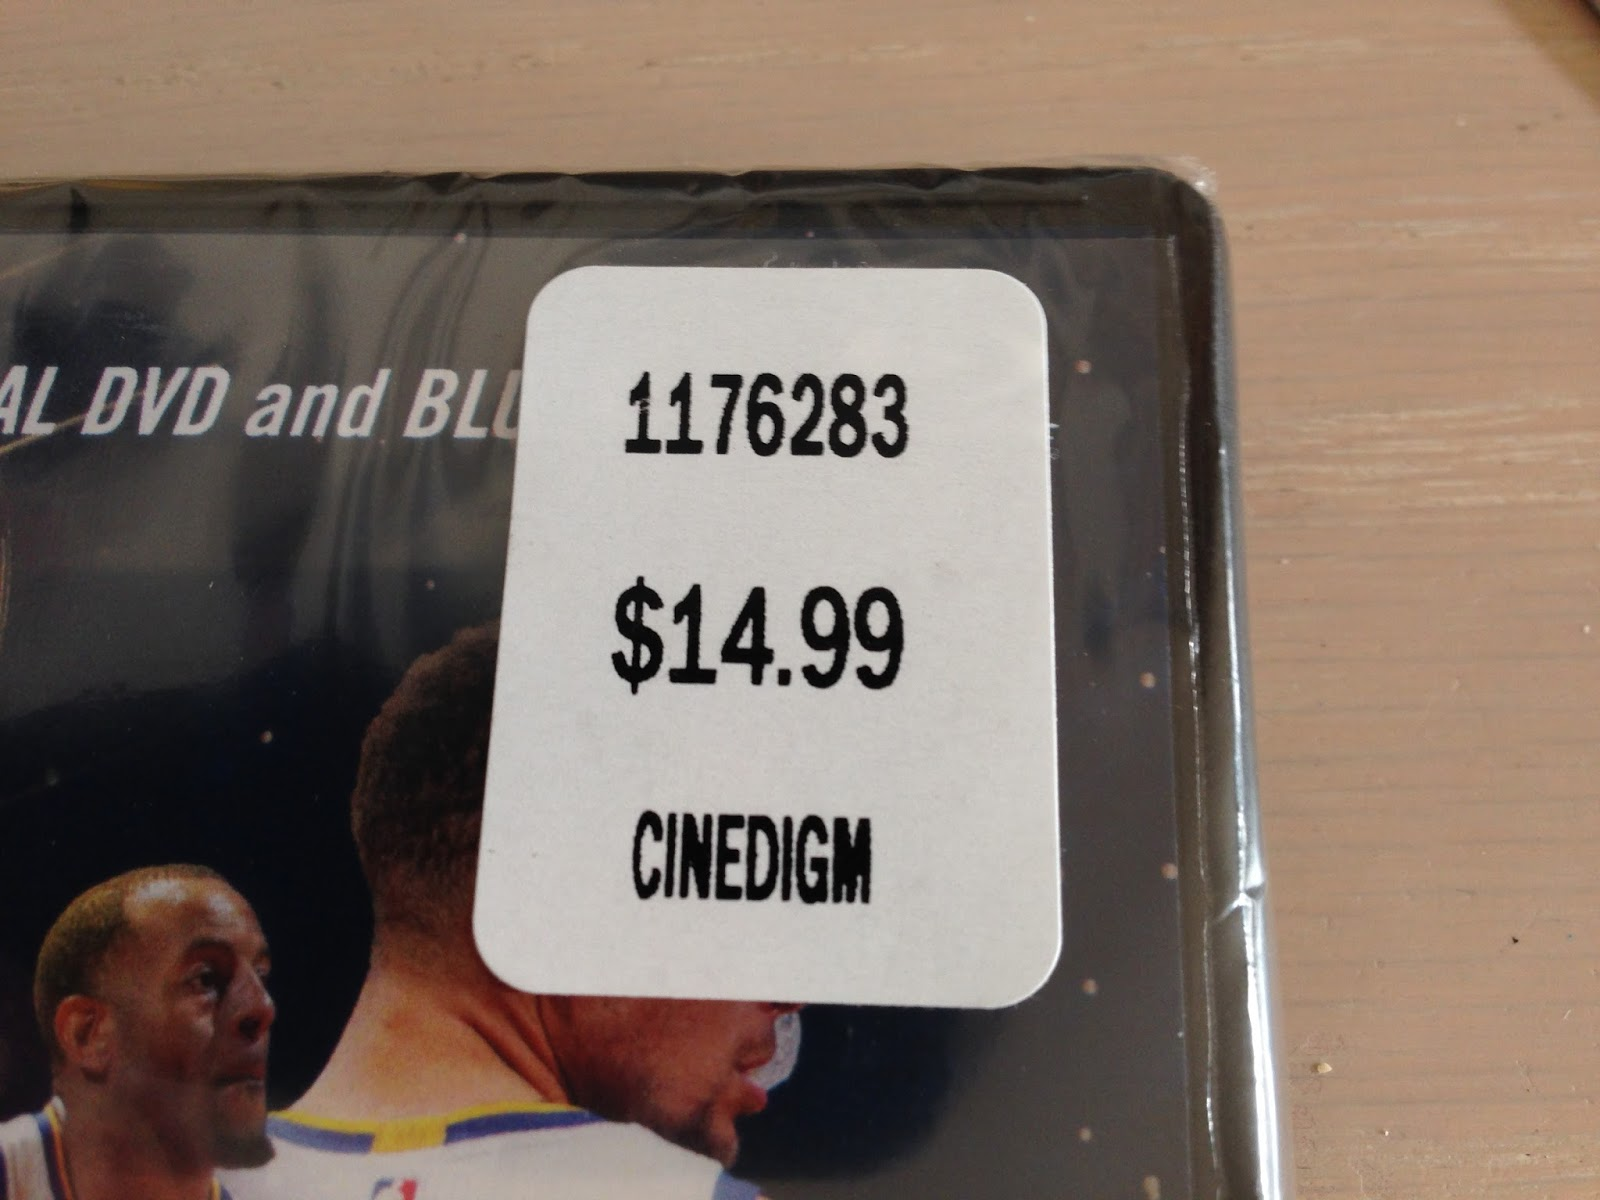 Deal for the Golden State Warriors Official 2017 Championship DVD and Blue-ray at Costco